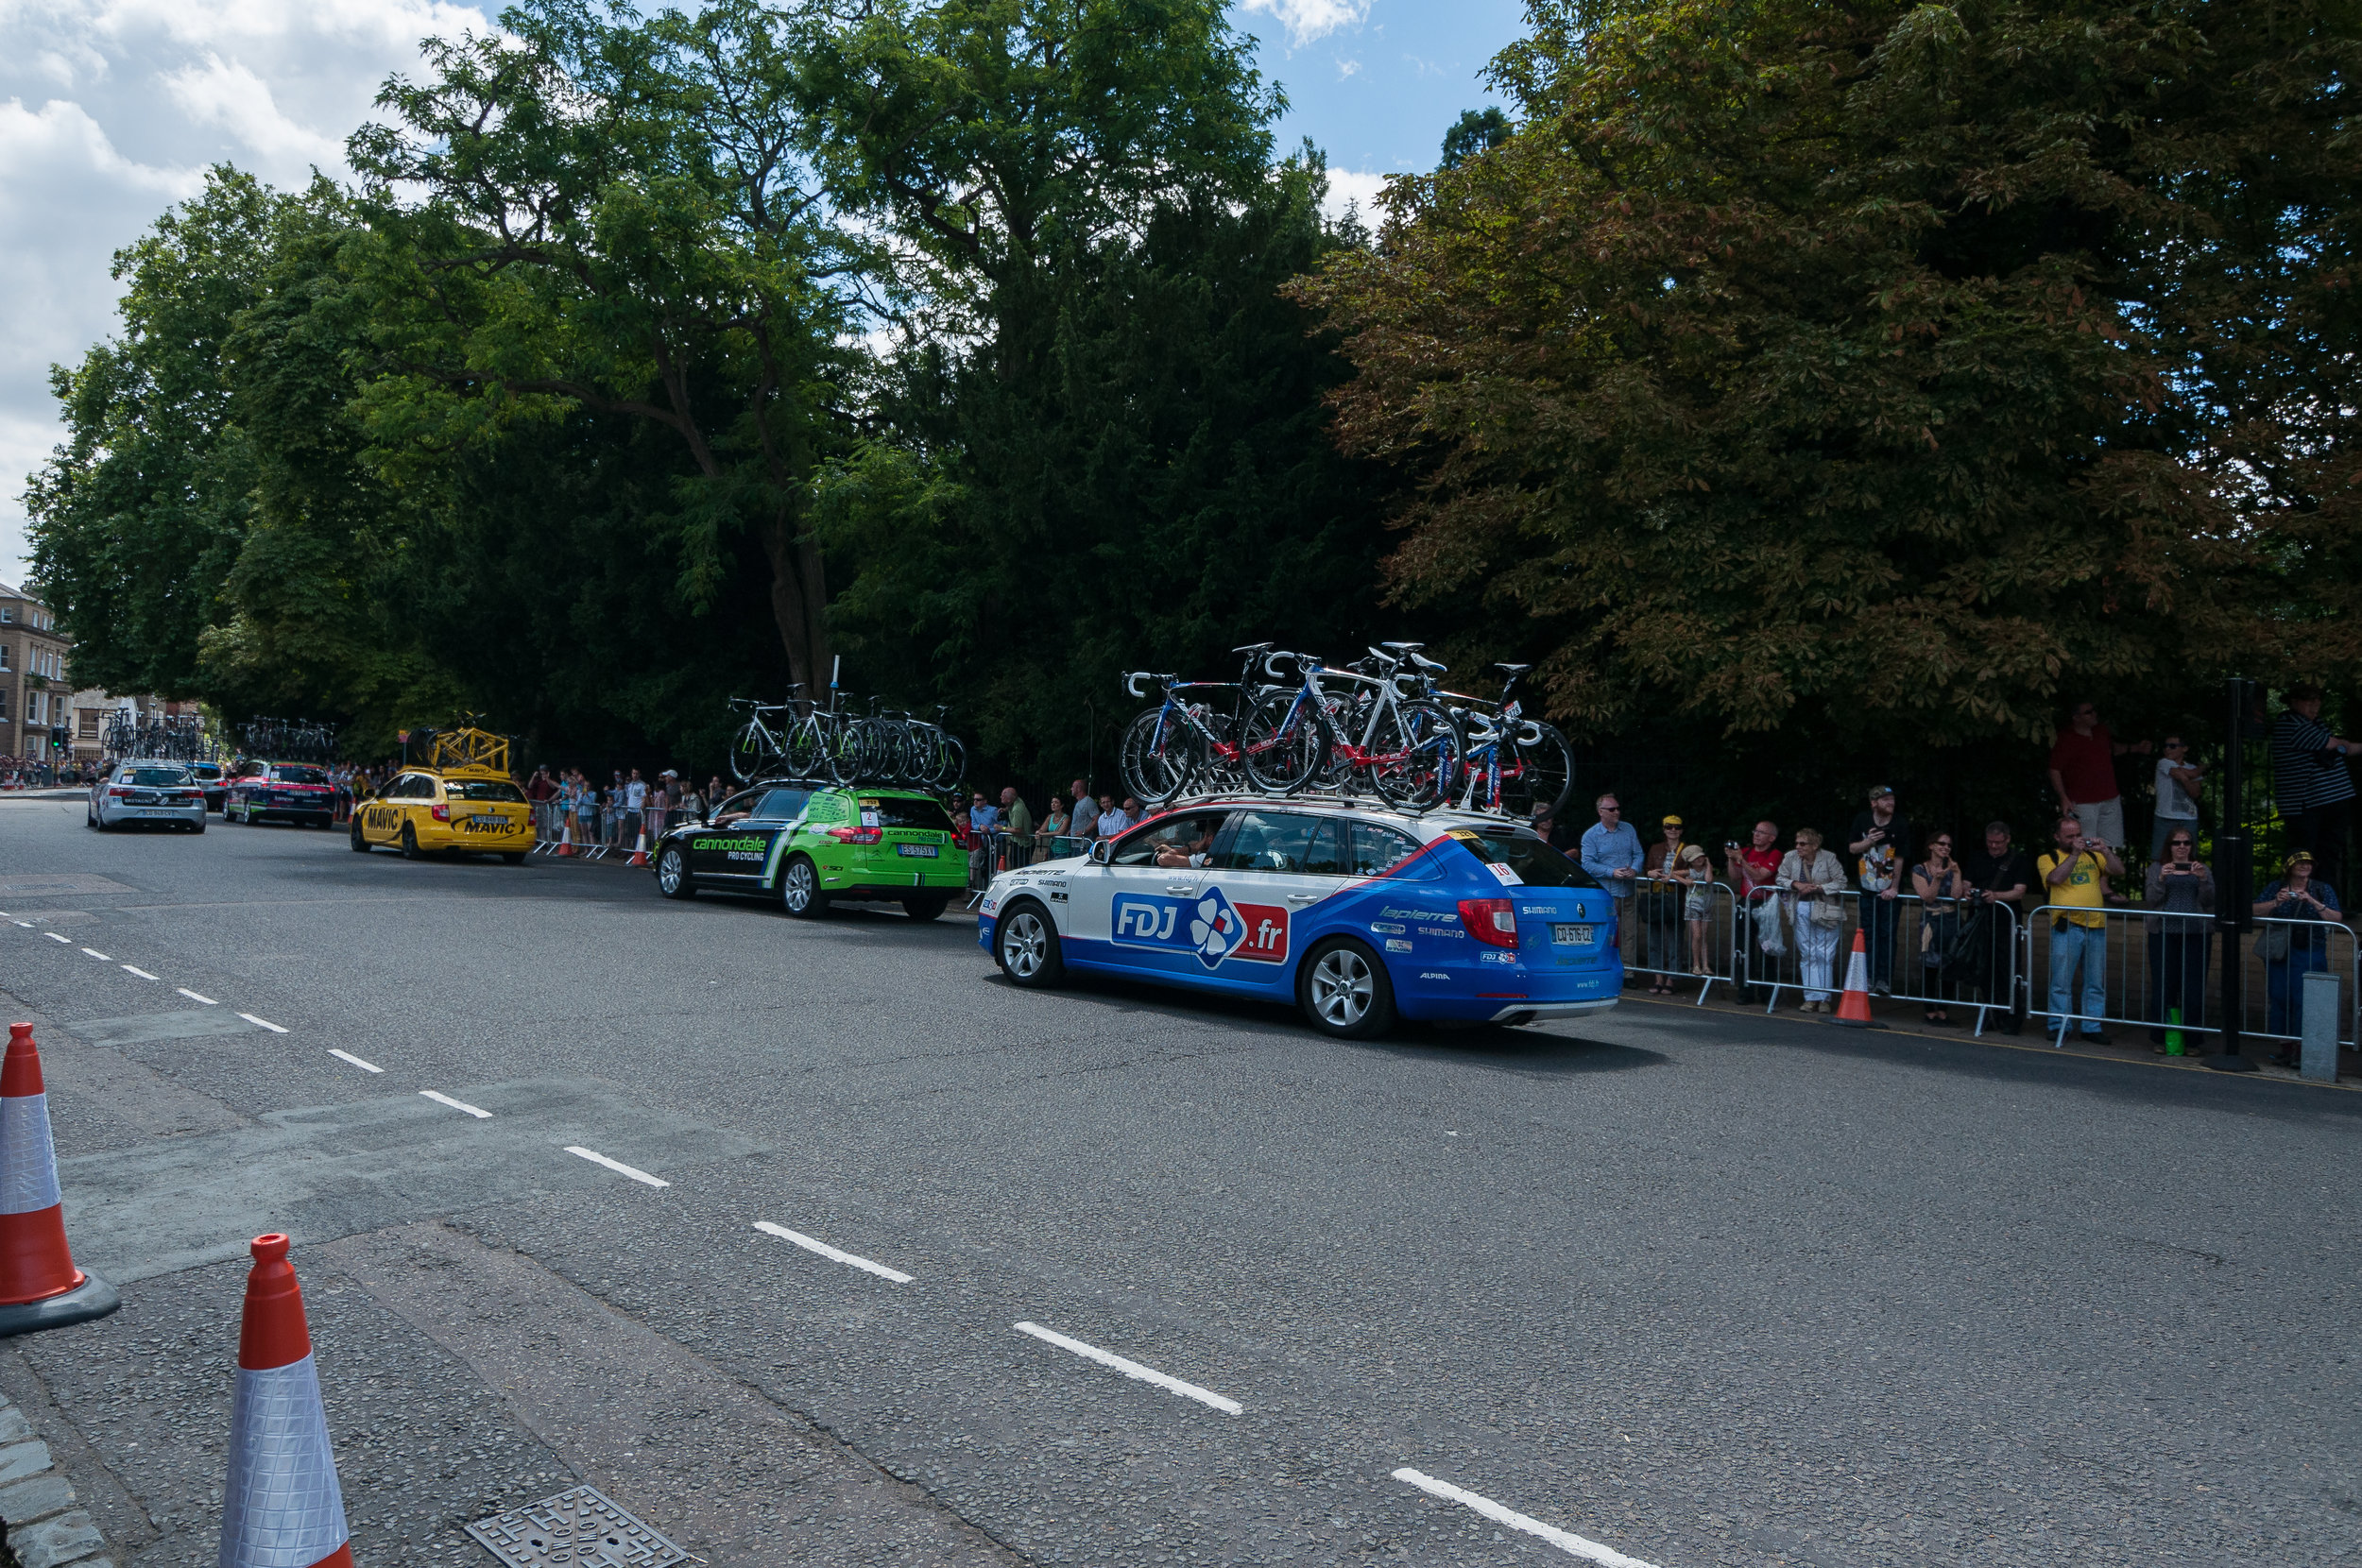 A huge fleet of support cars followed the peloton through. All of them trying to keep close to the cyclists led to a few close calls...